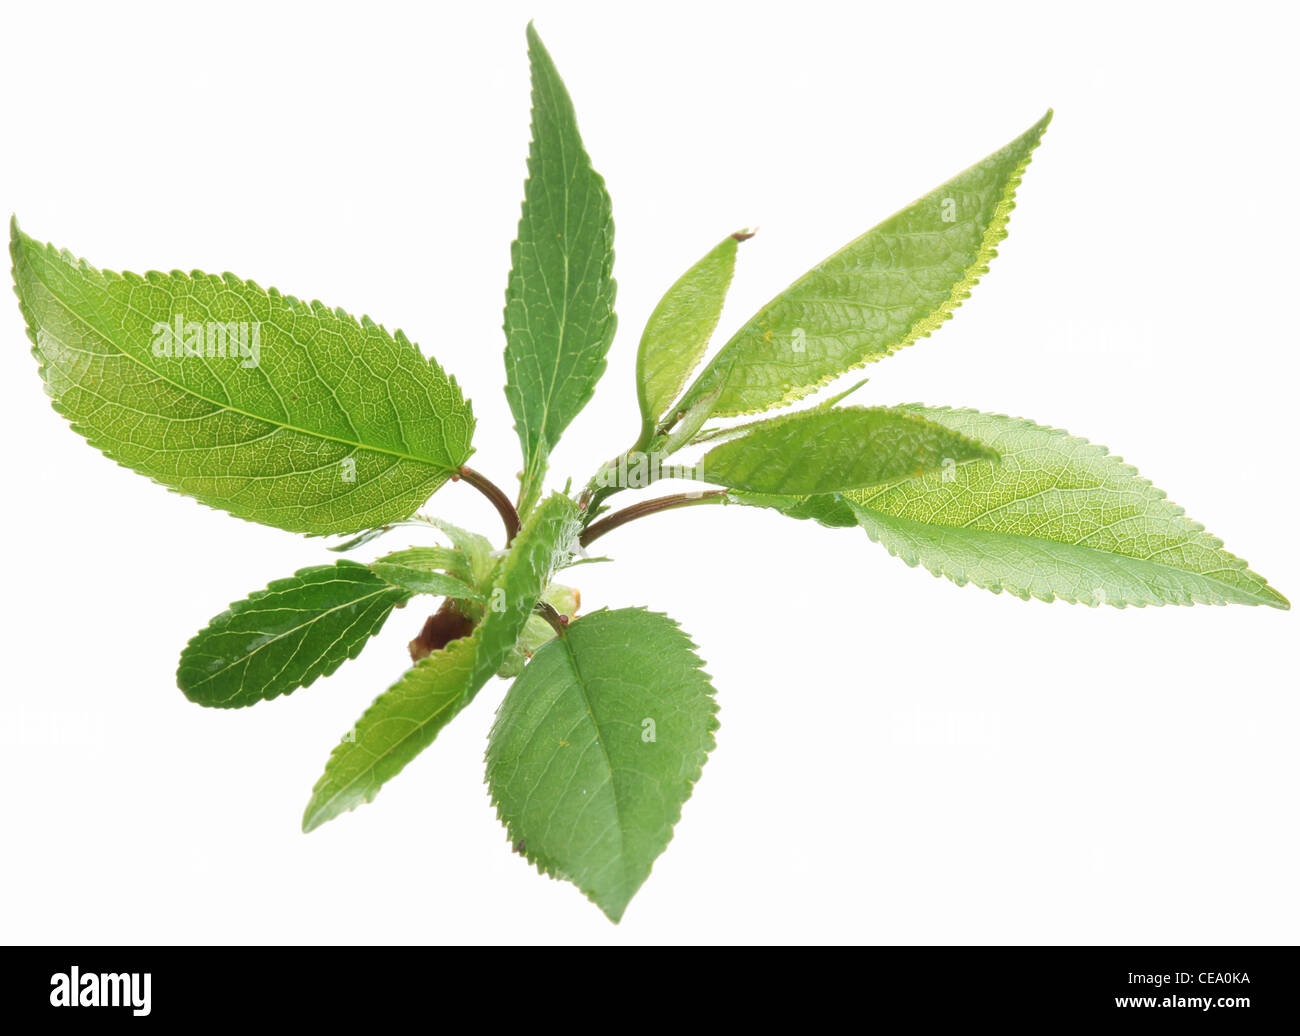 Gentle spring leaves on a white background. - Stock Image